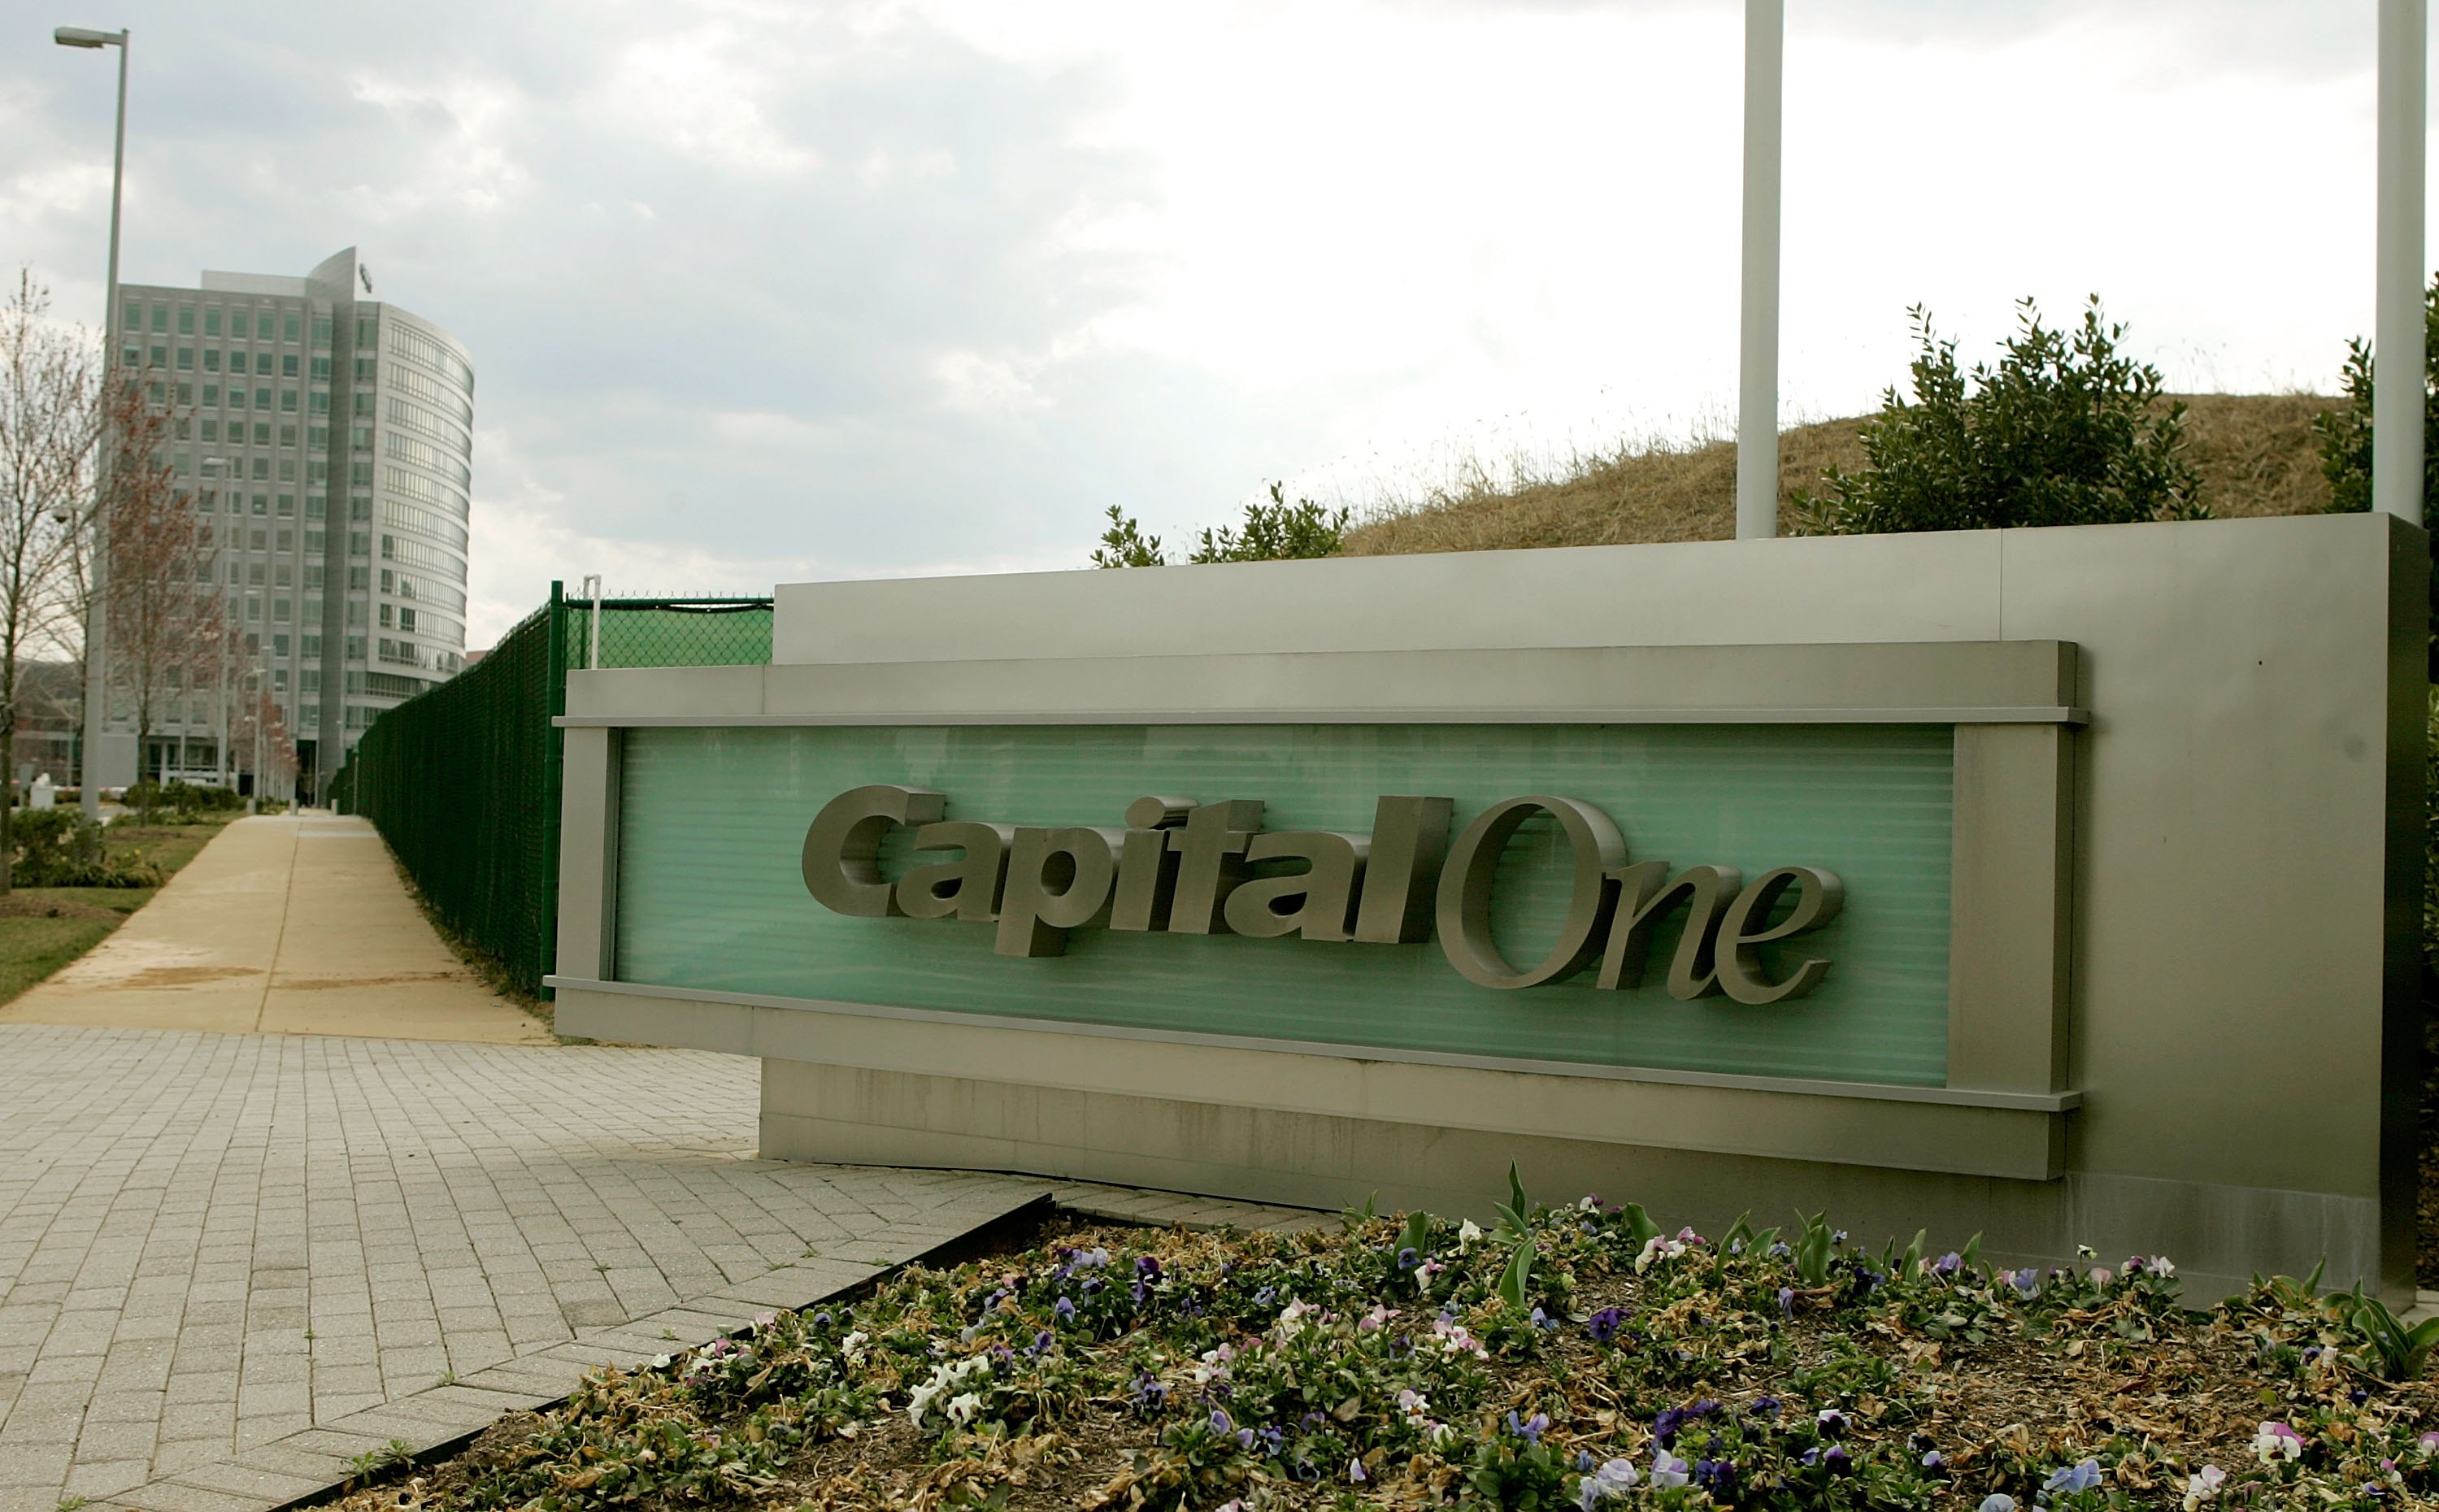 Capital One Acquires North Fork Bank For $14.6 Billion